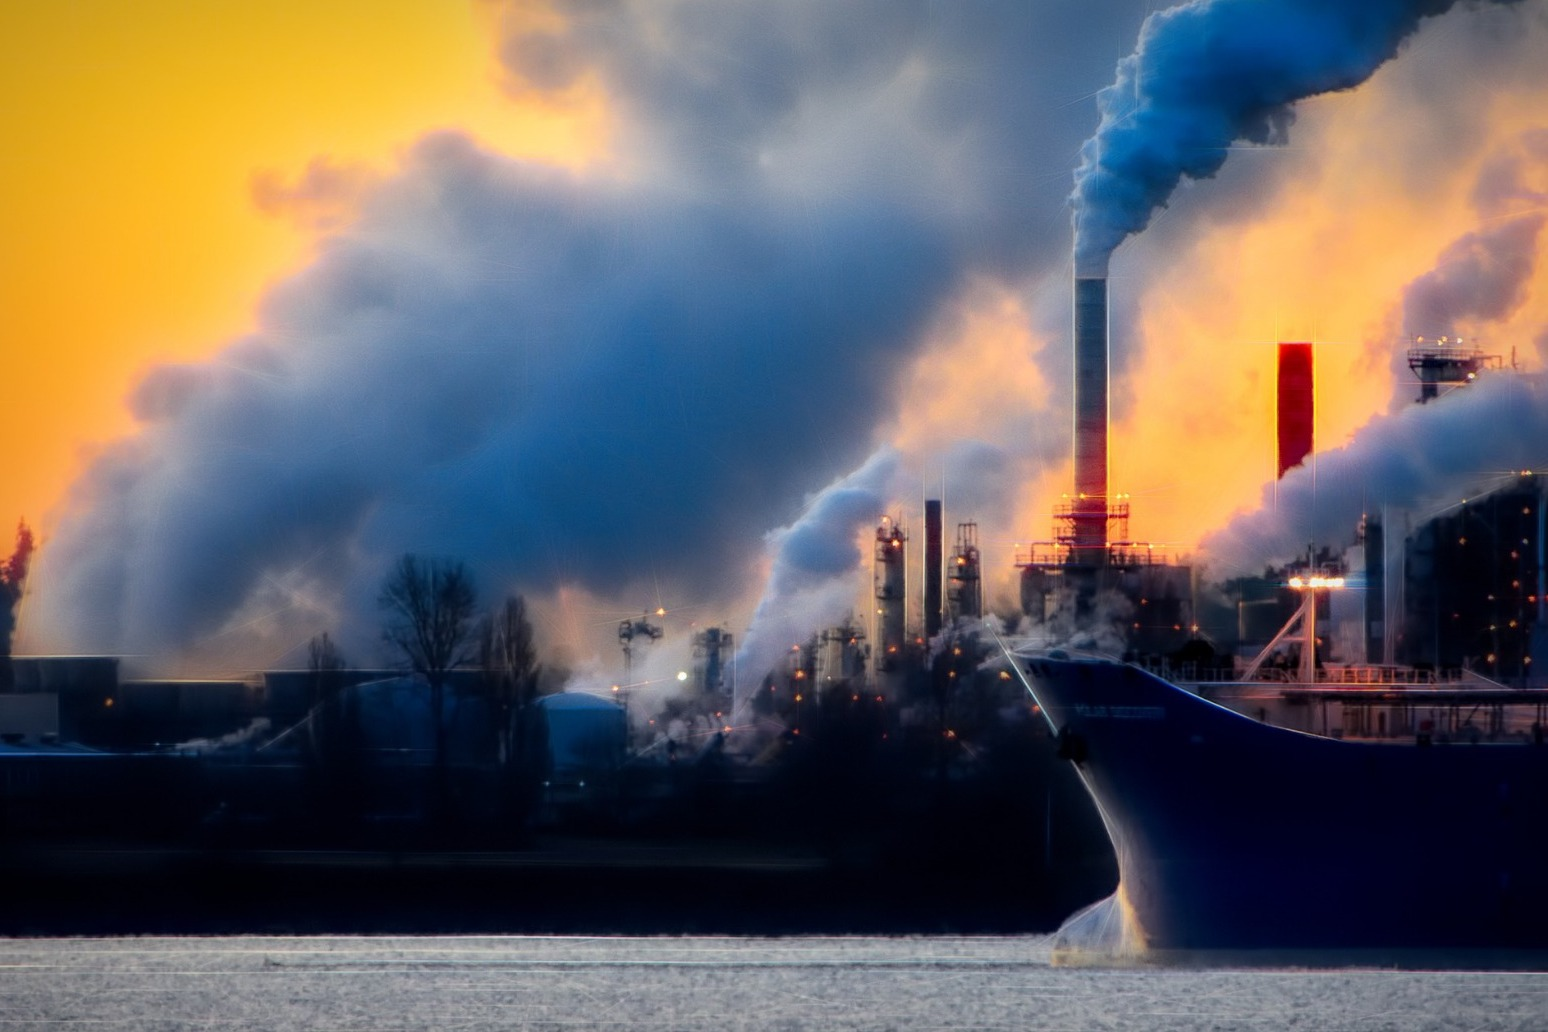 Britain should deepen climate target to net zero emissions by 2050 – advisers